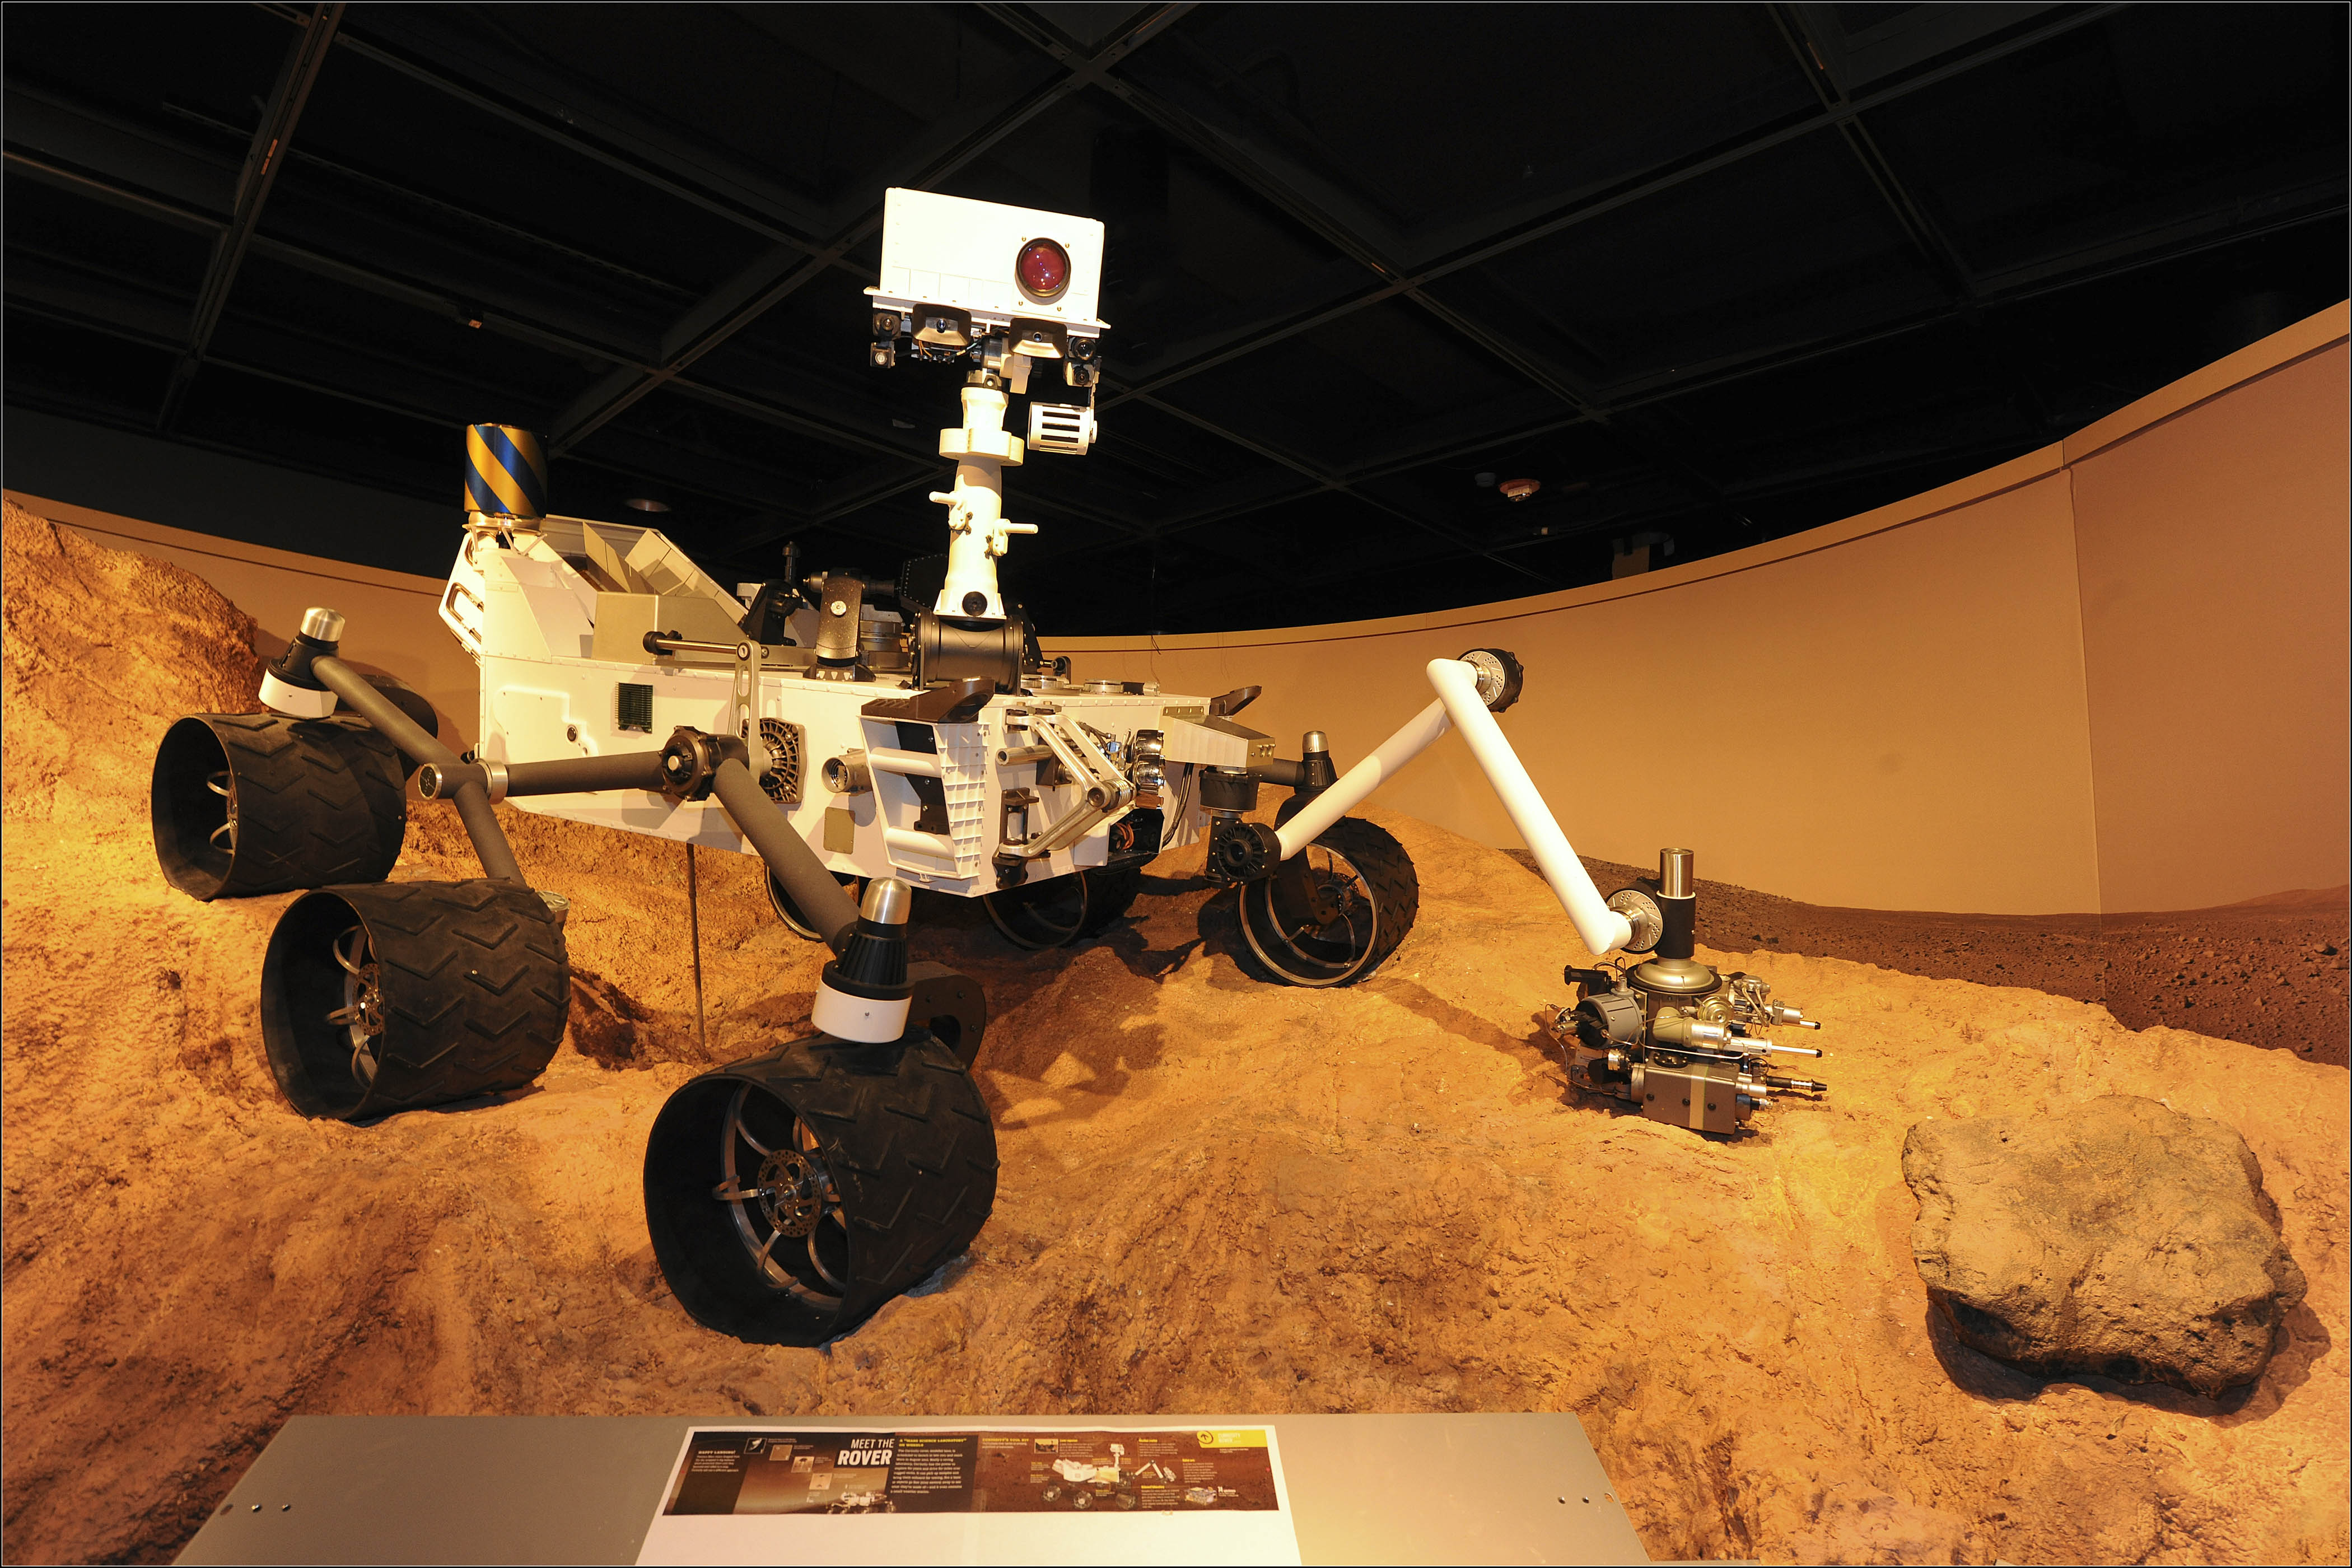 Curiosity Rover Arrives on Mars to Begin Mission